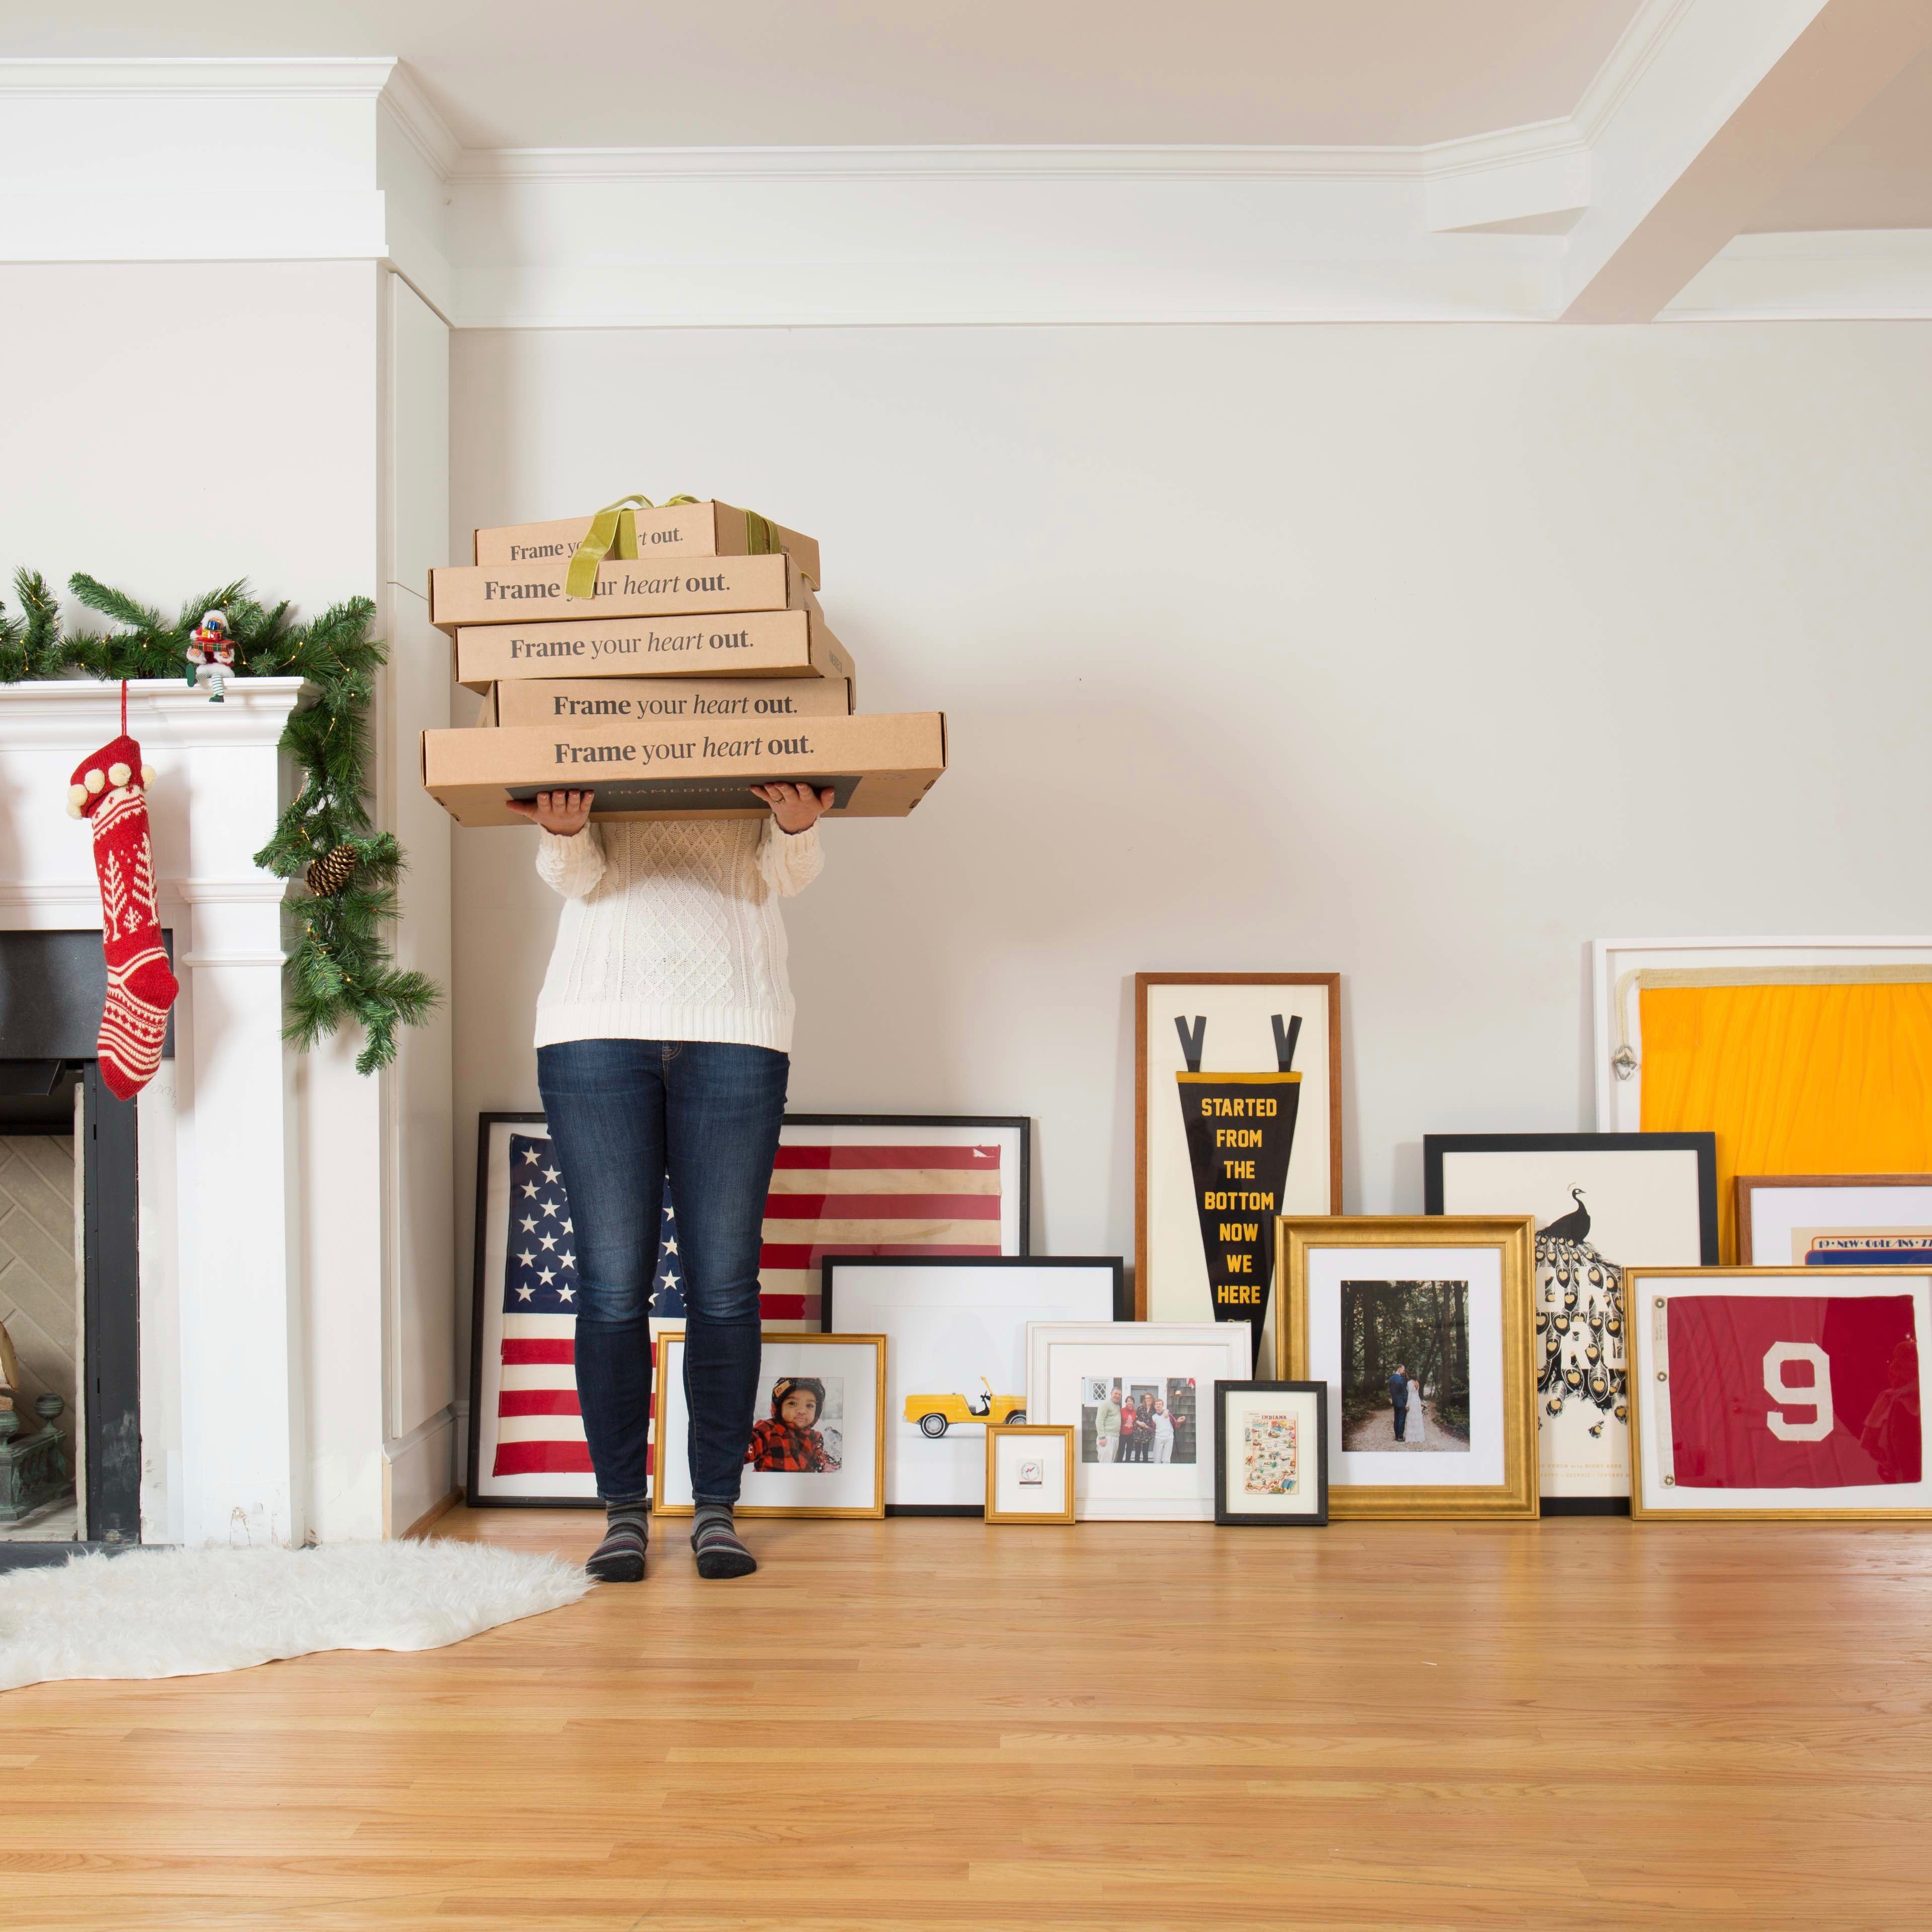 Shop the Attic: Things You Can Framebridge